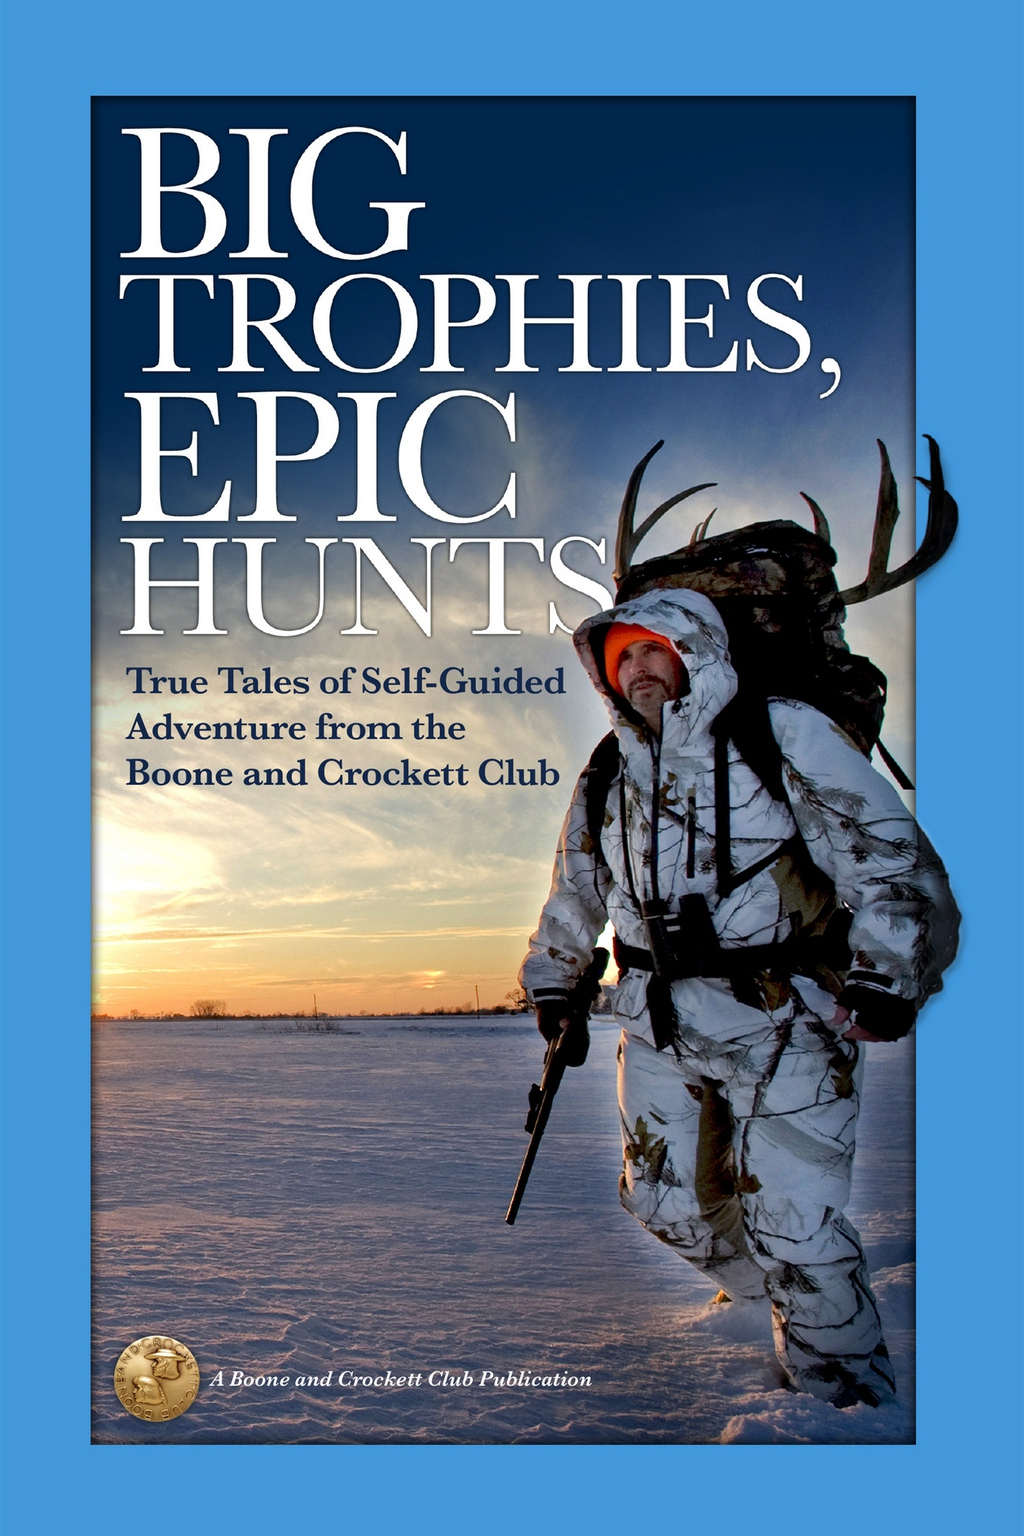 Big Trophies, Epic Hunts: True Tales of Self-Guided Adventure from the Boone and Crockett Club (ebook) eBooks